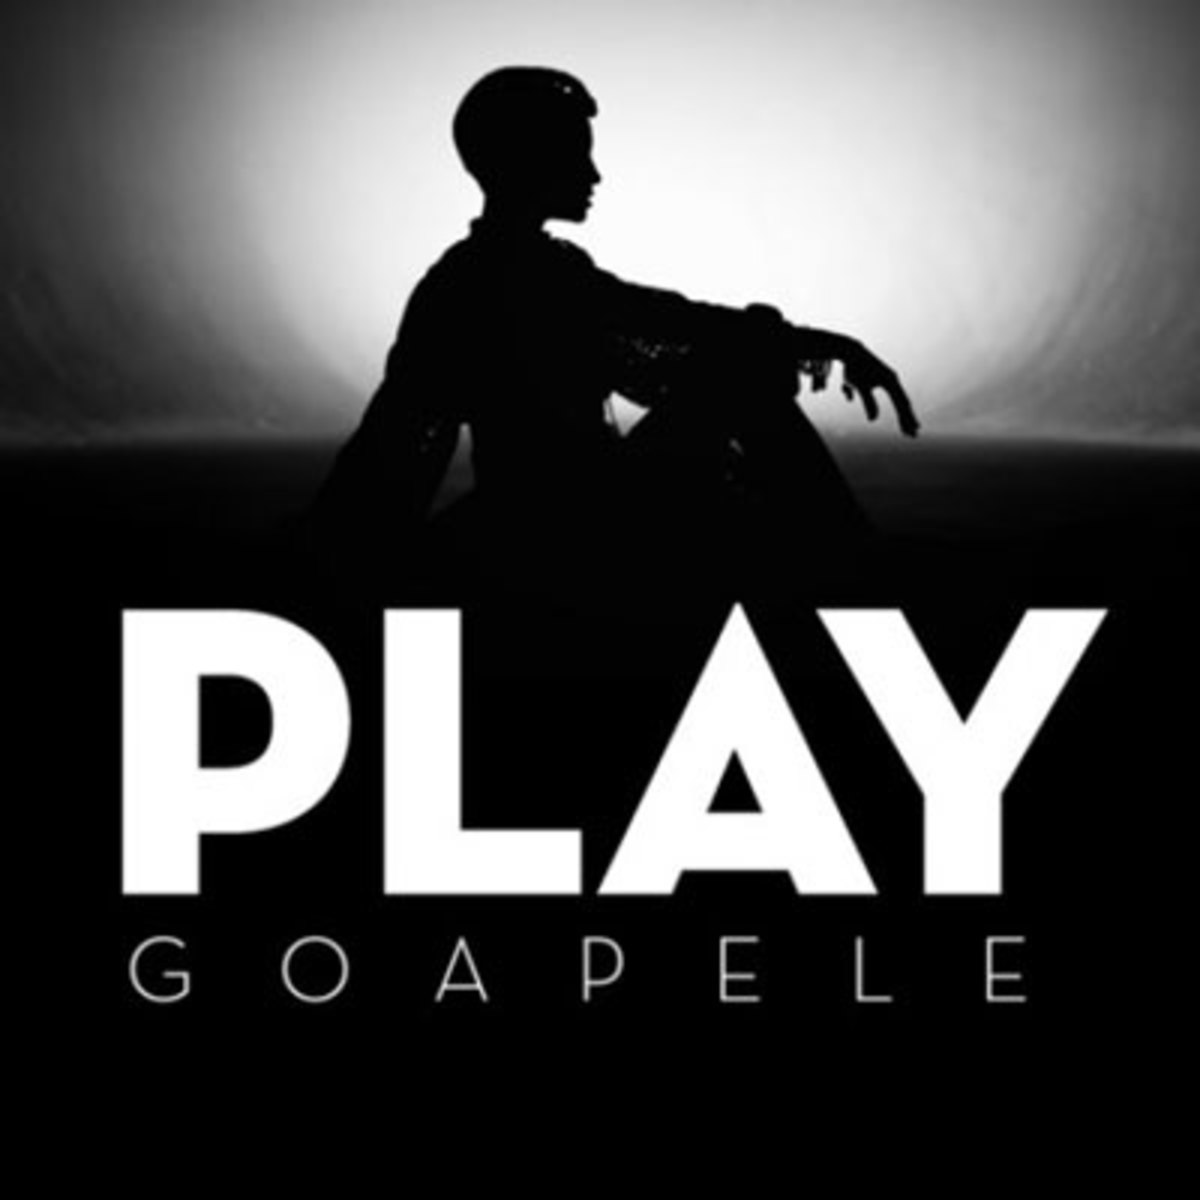 goapele-play.jpg